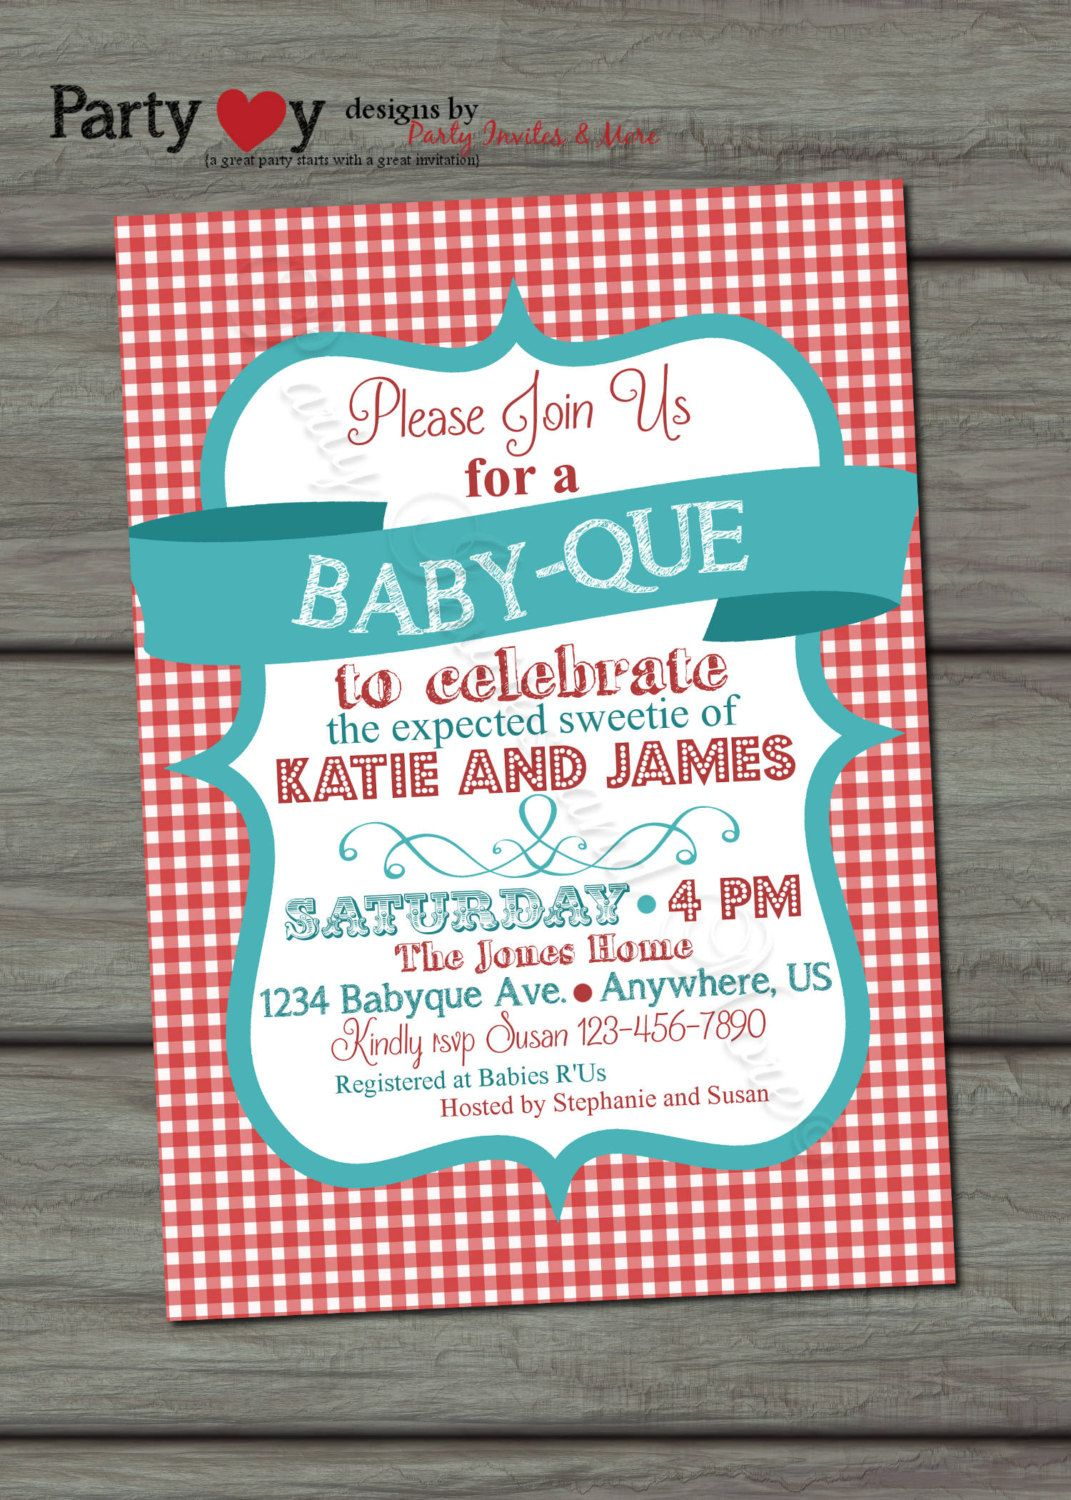 BBQ Joint Baby Shower   Digital Print File. $8.00, Via Etsy.